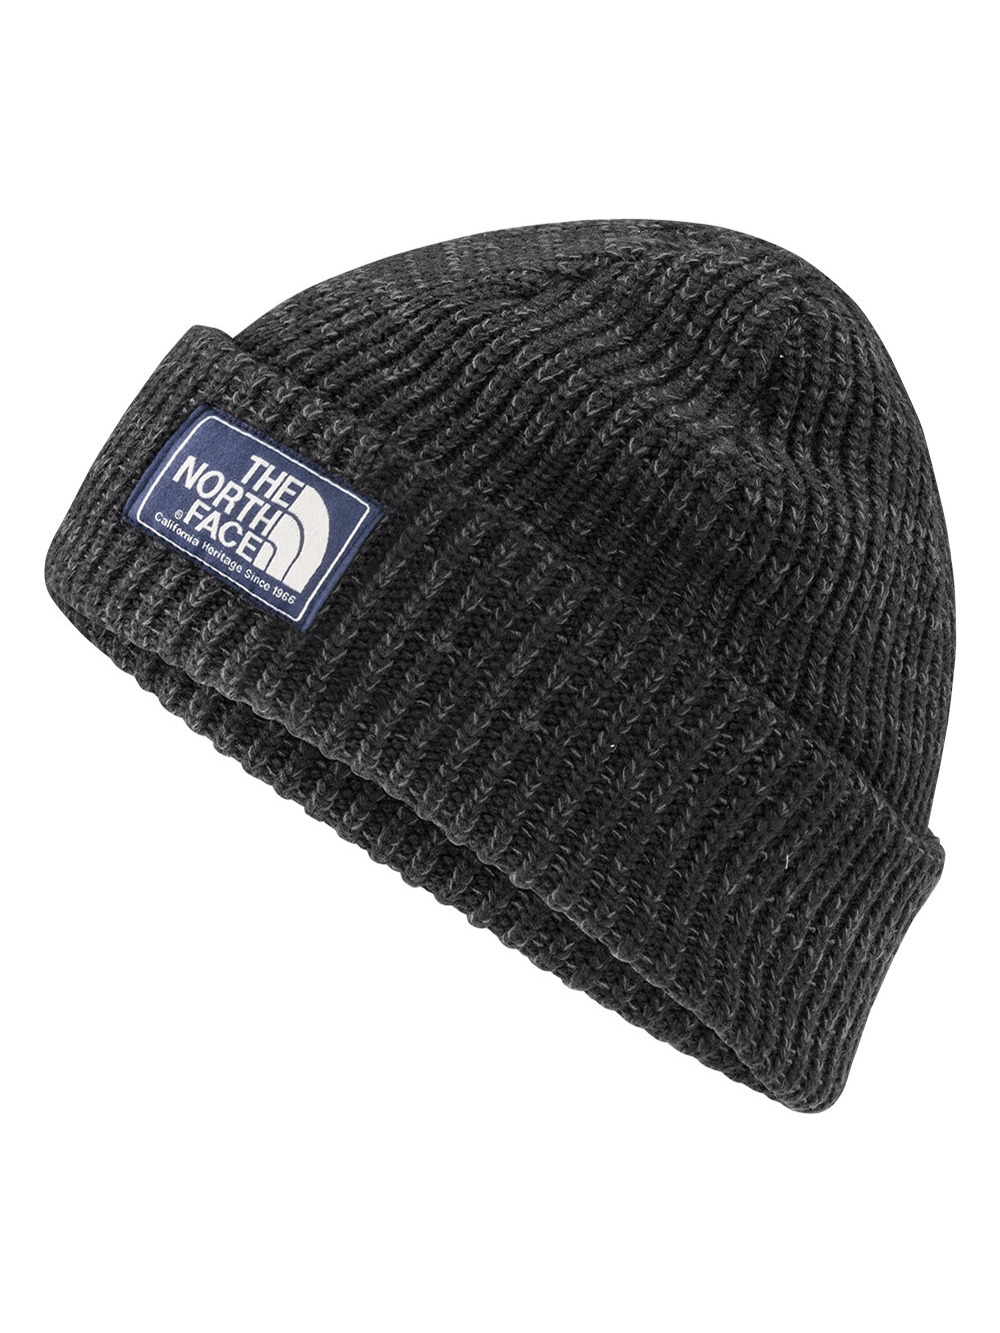 The North Face Men's Salty Dog Beanie (One Size)